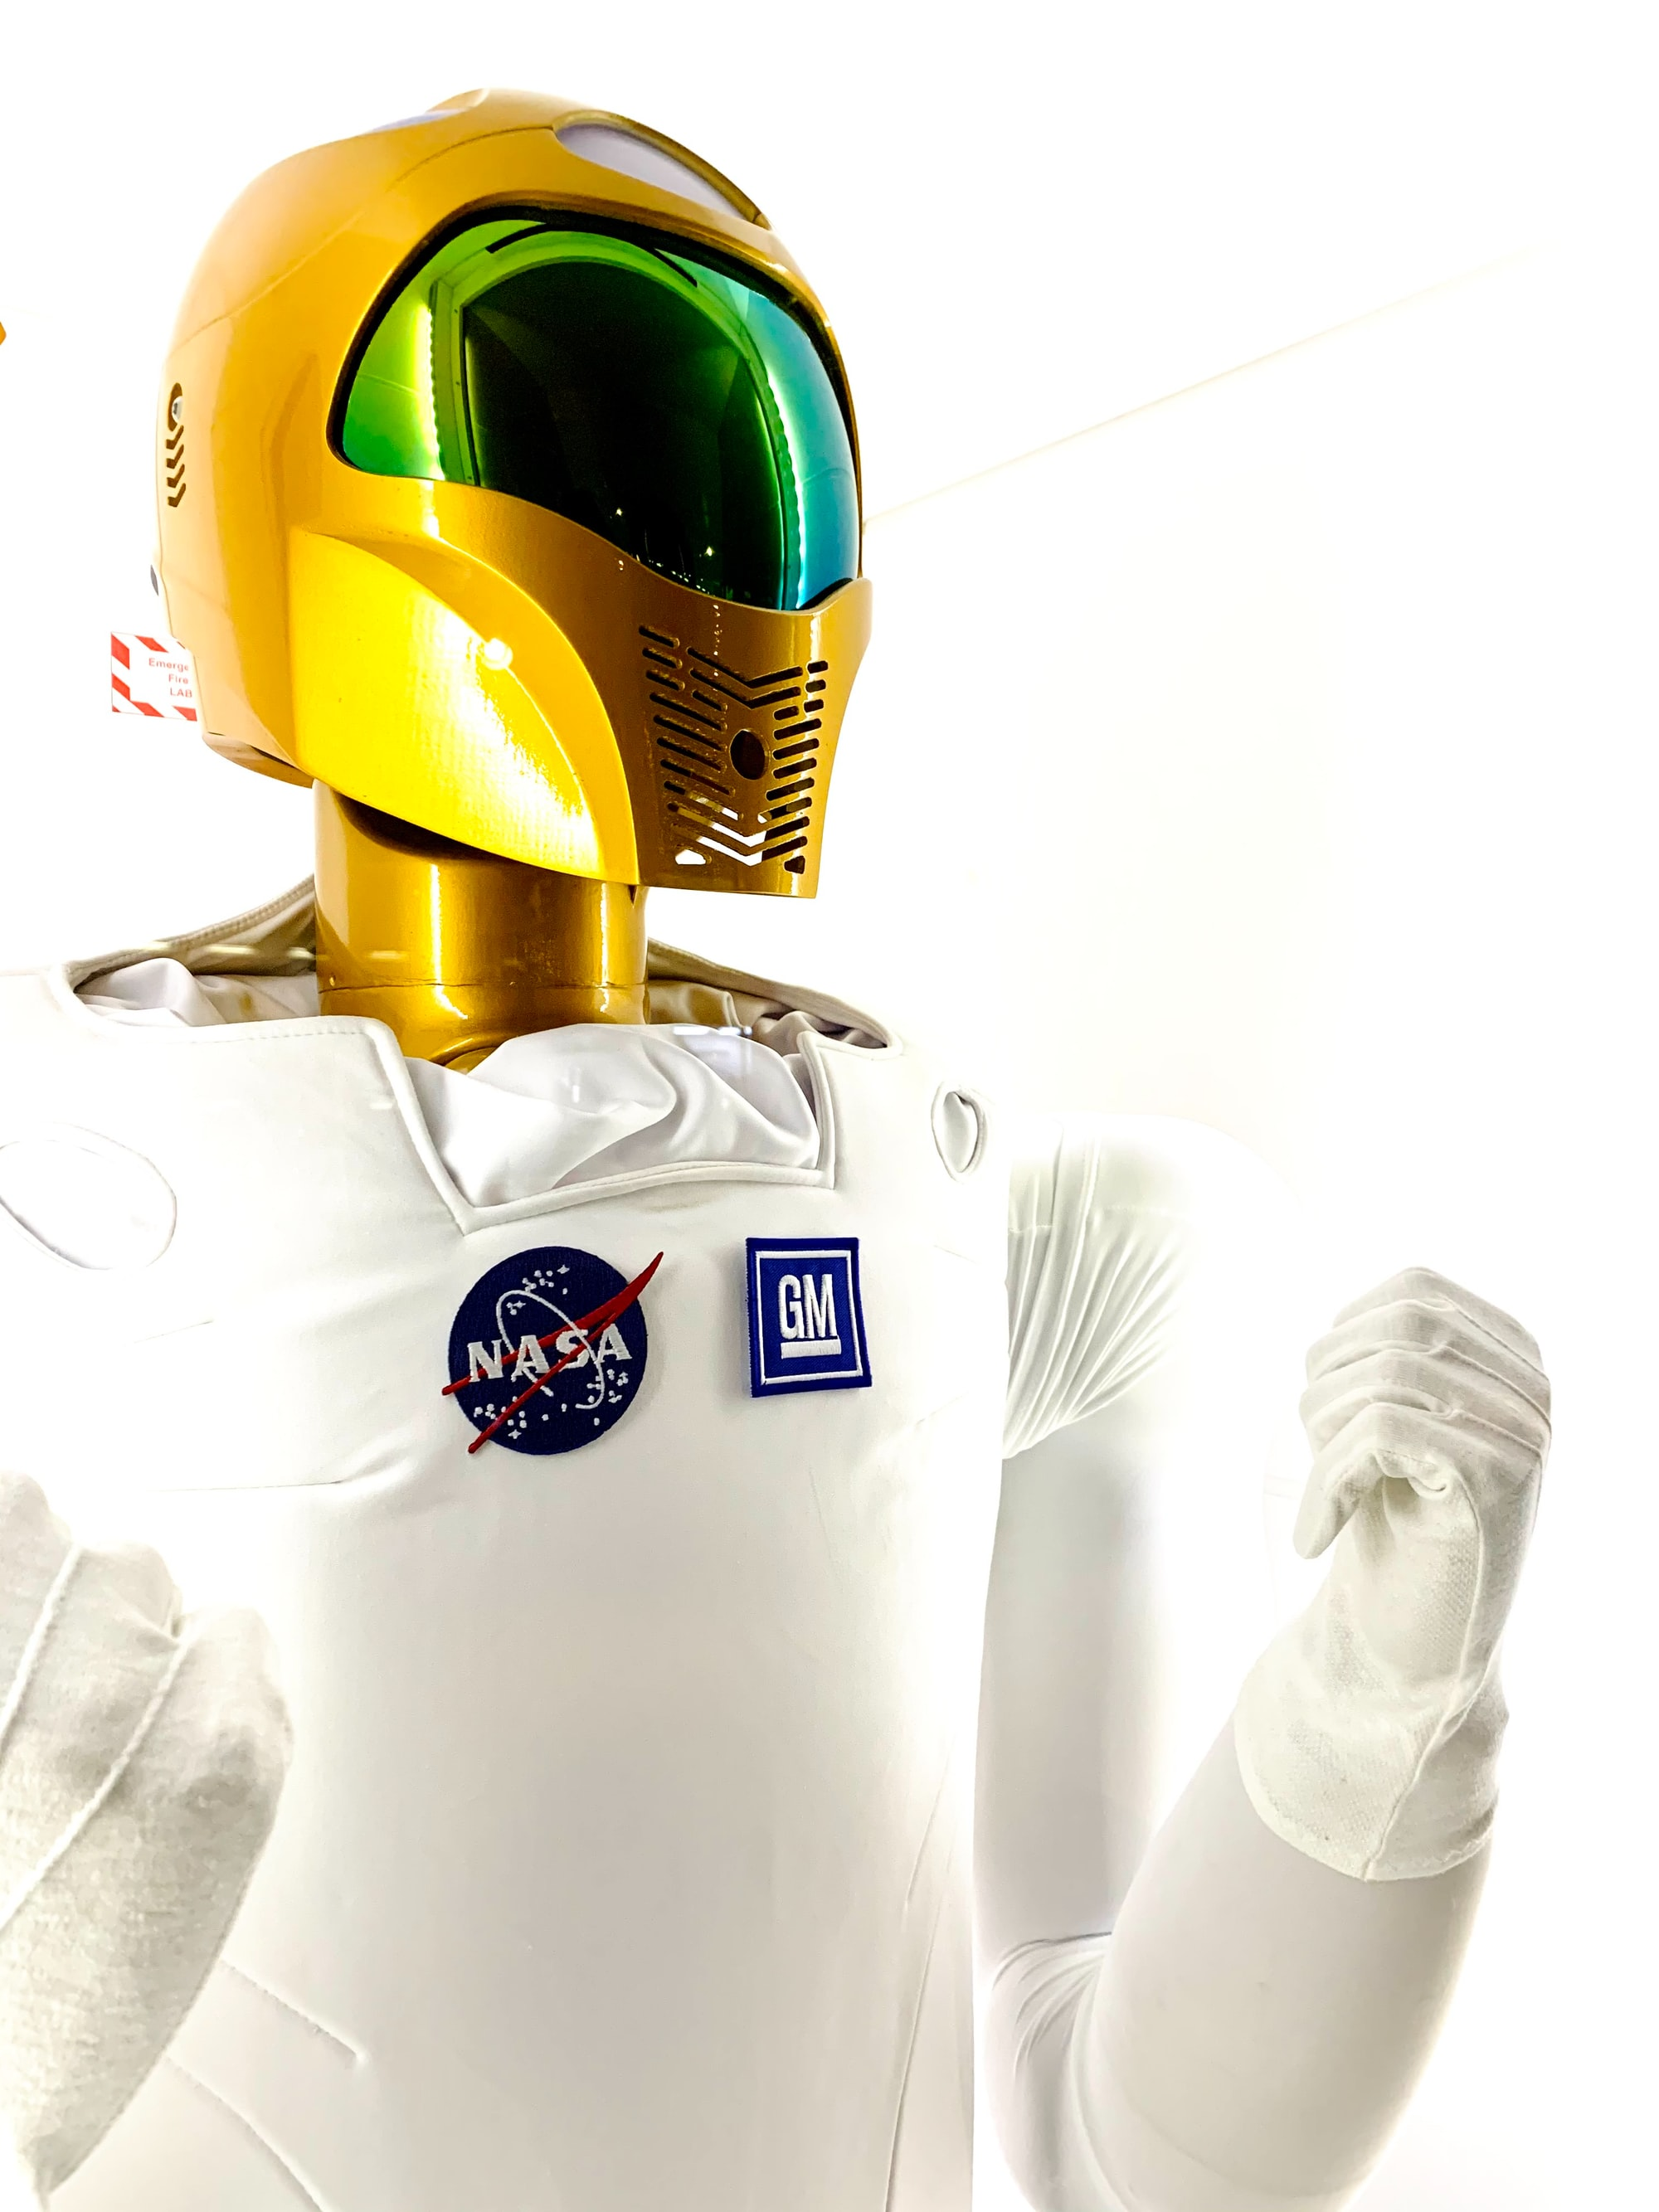 Newsletter #39 - NASA's AI-based space robots